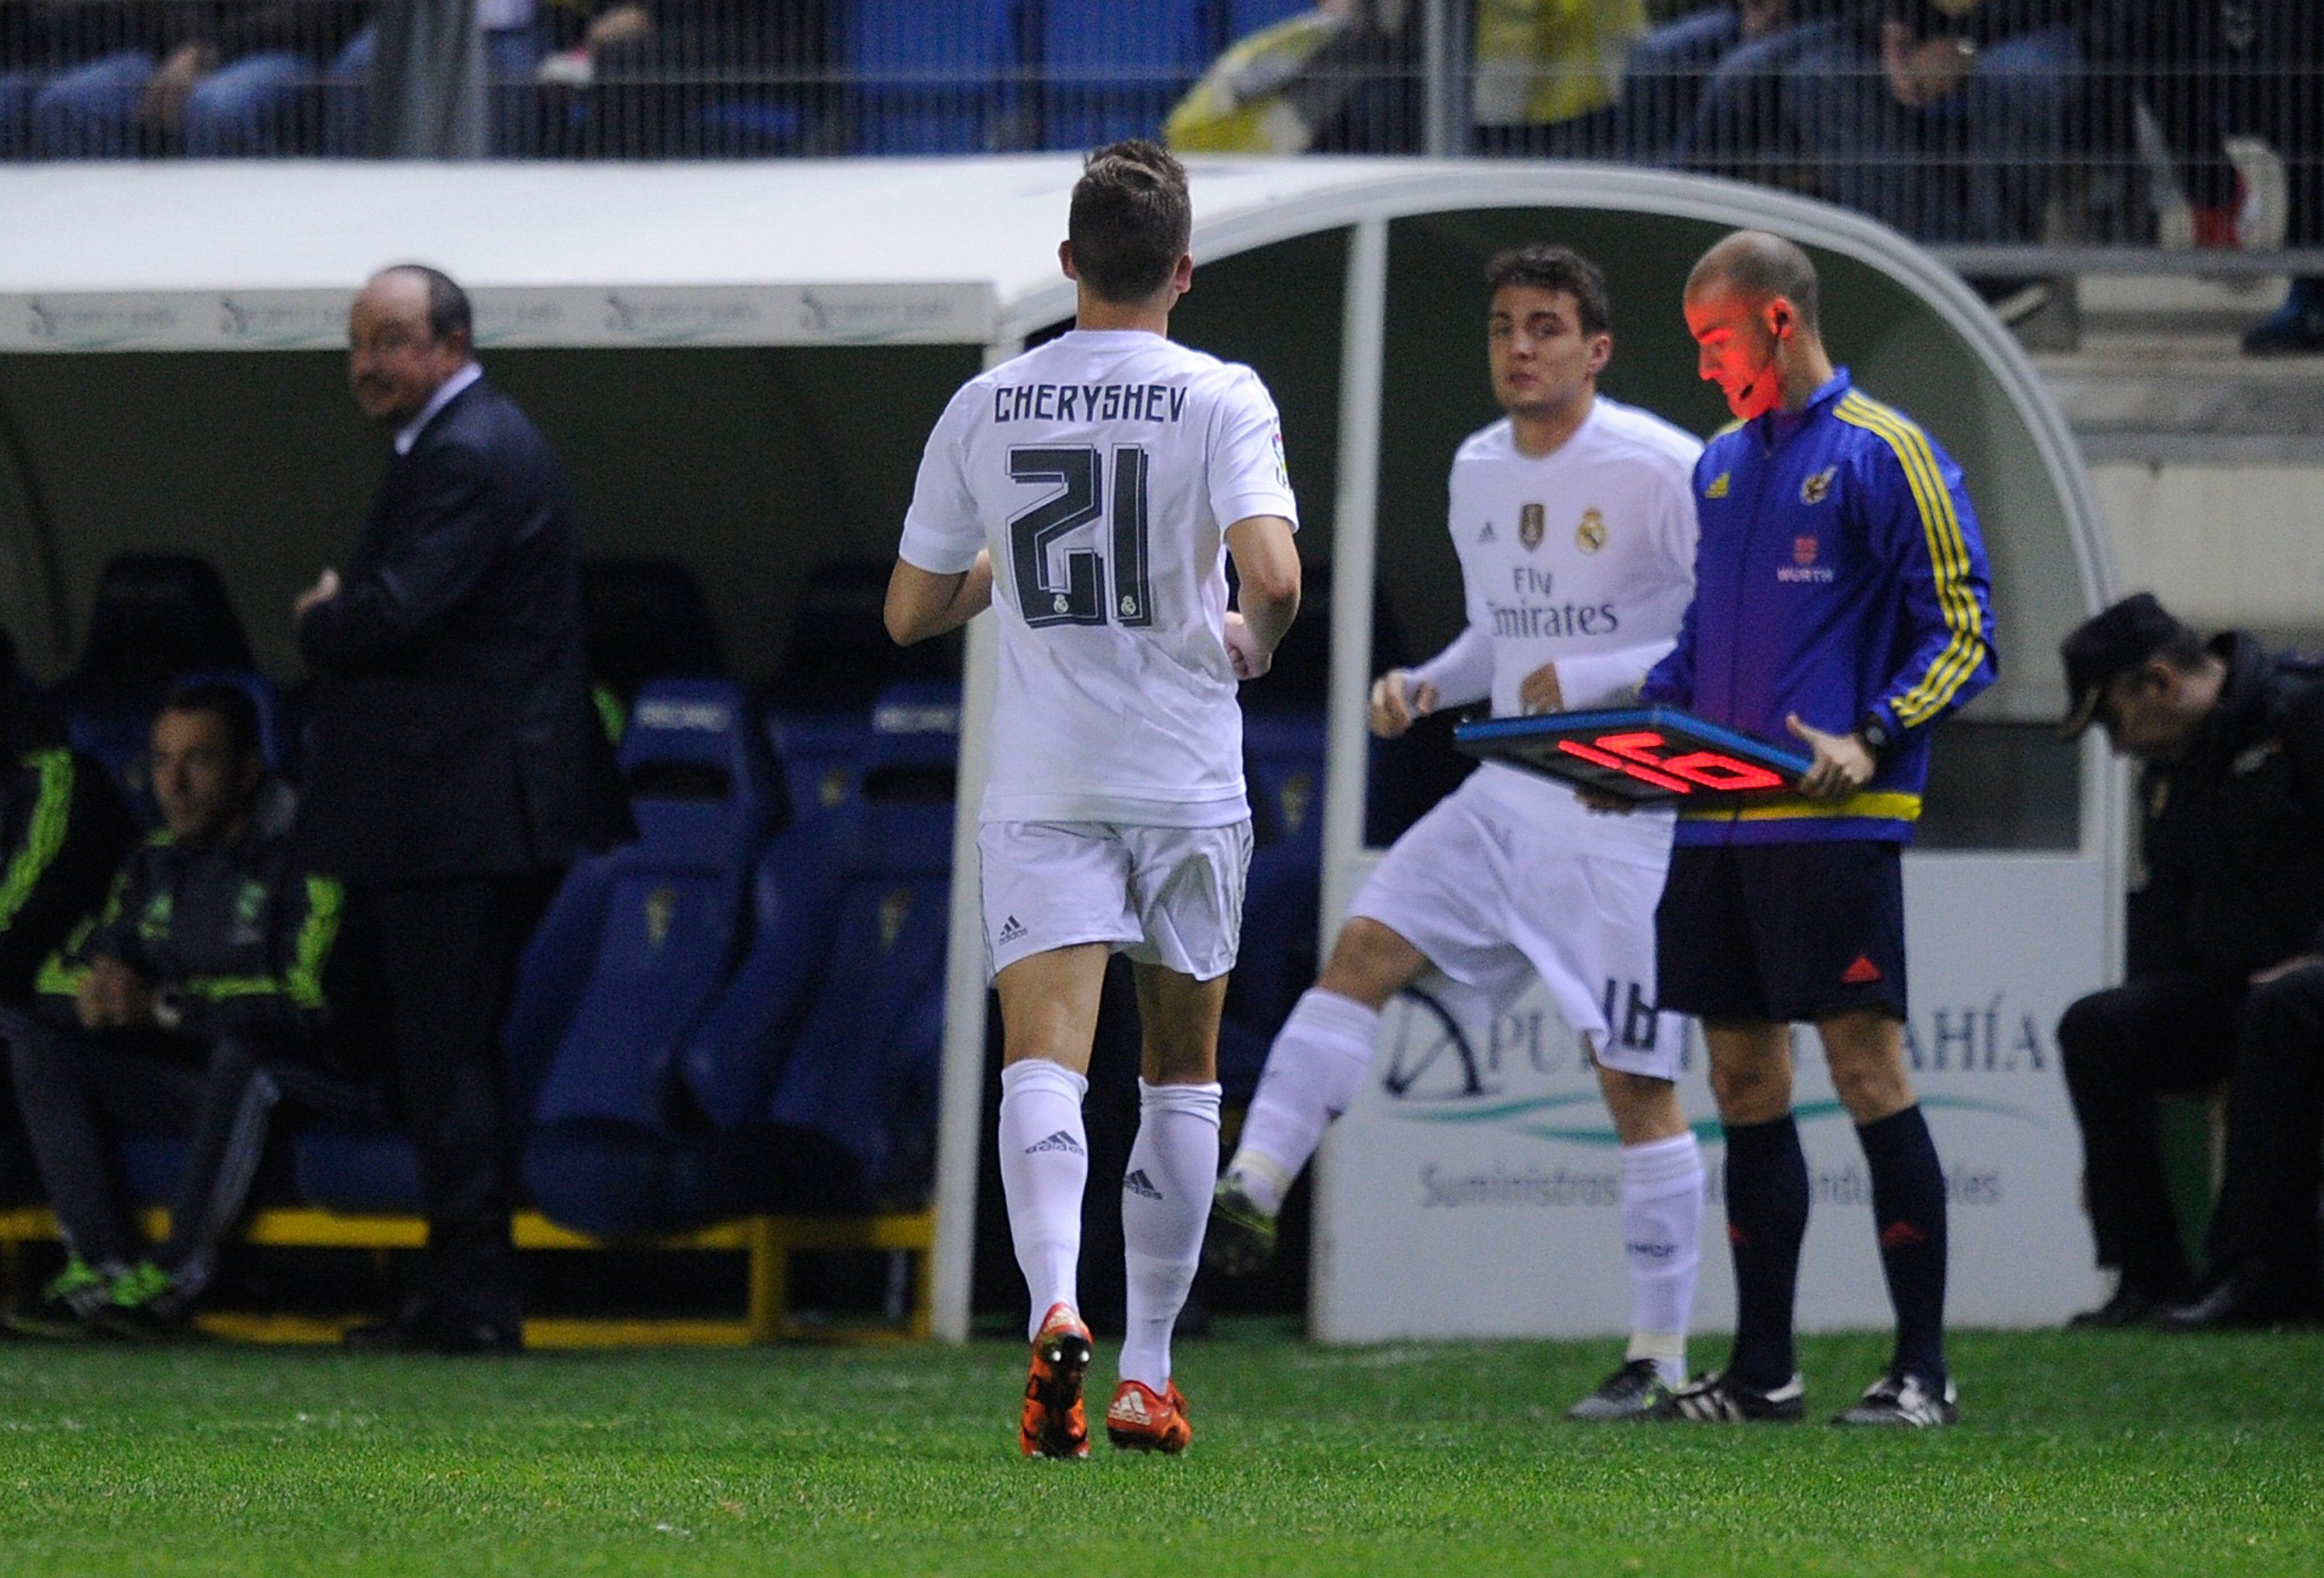 Real Madrid kicked out of one of Europe's premier soccer tournaments for fielding an ineligible player